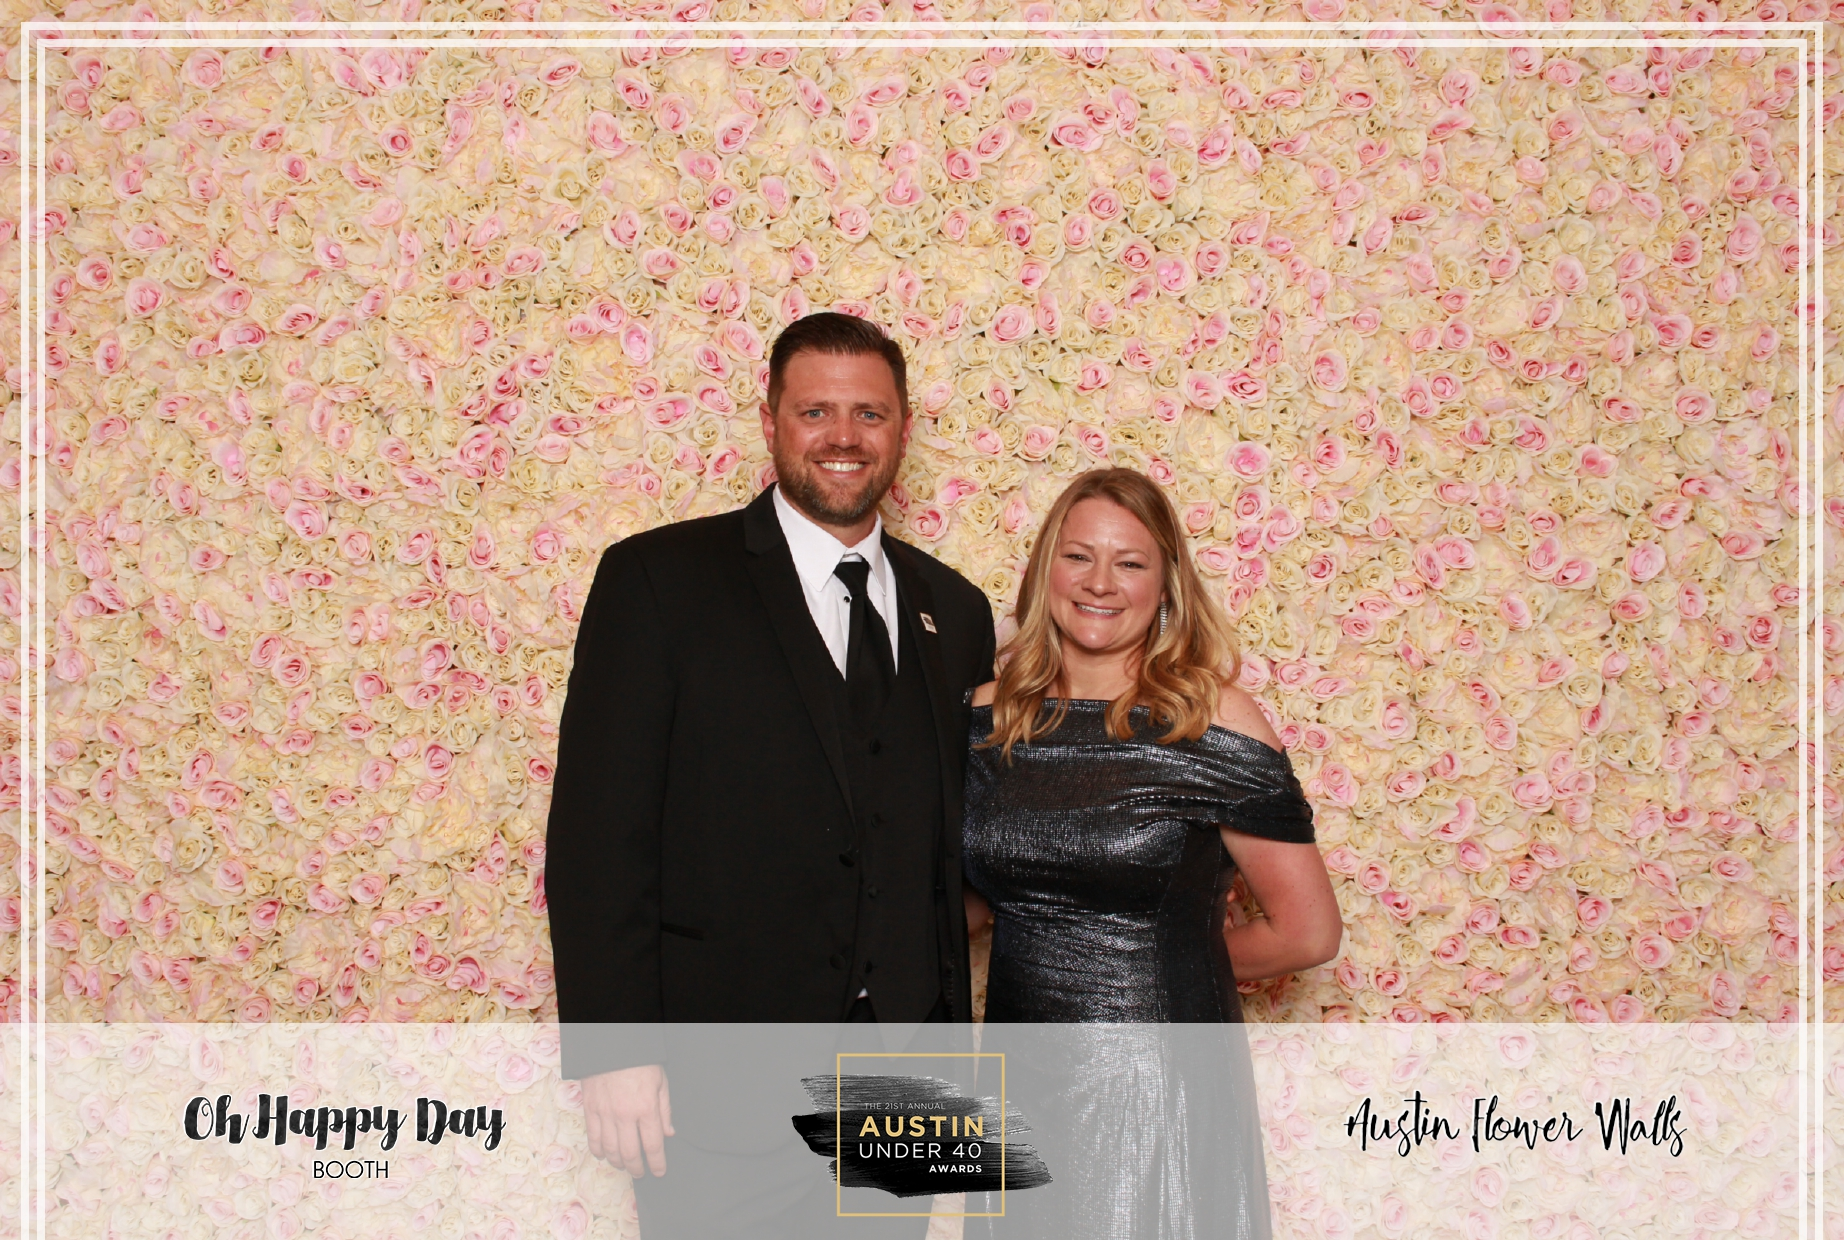 Oh Happy Day Booth - Austin Under 40-16.jpg